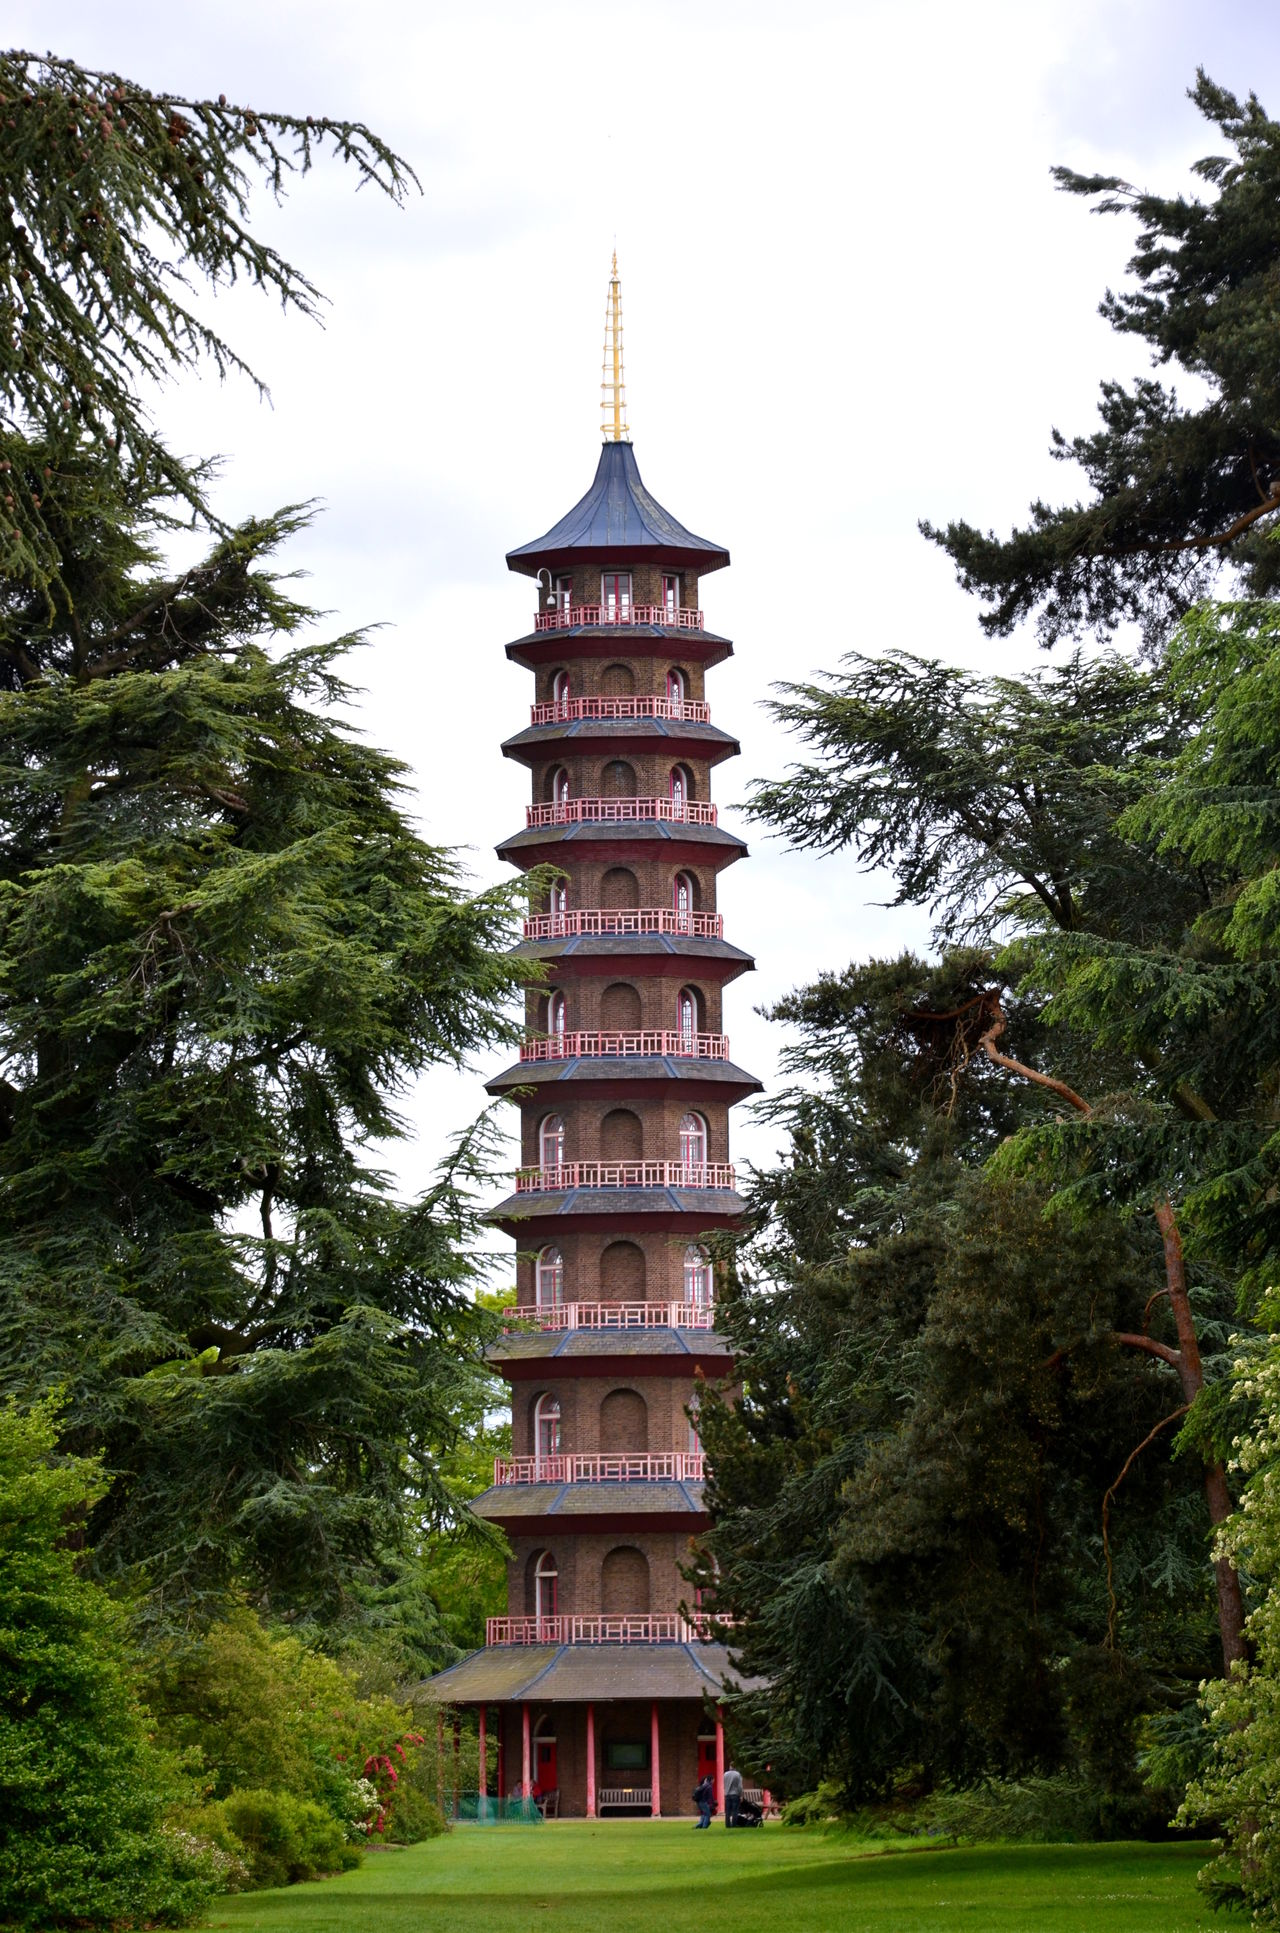 Architecture Built Structure Kew Garden Kew Gardens Kew Gardens, London Low Angle View No People Tall - High Tower Travel Destinations